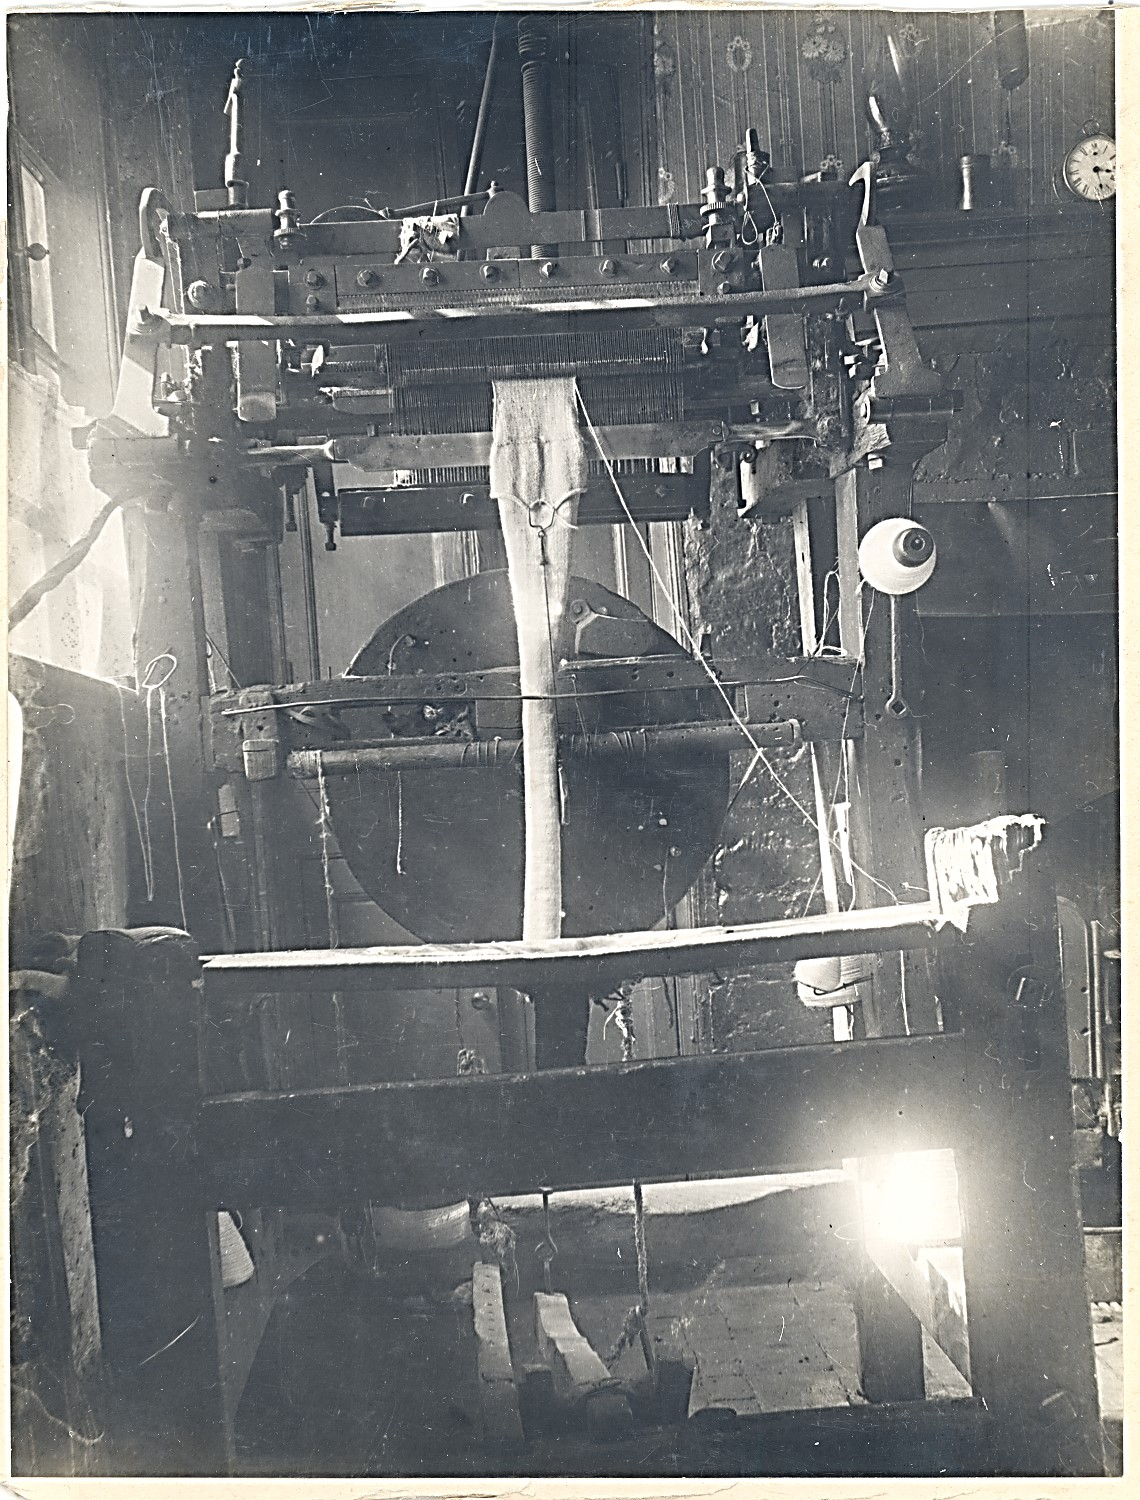 nov_2019_hathern_knitting_machine_maybe_kegworth_museum.jpg